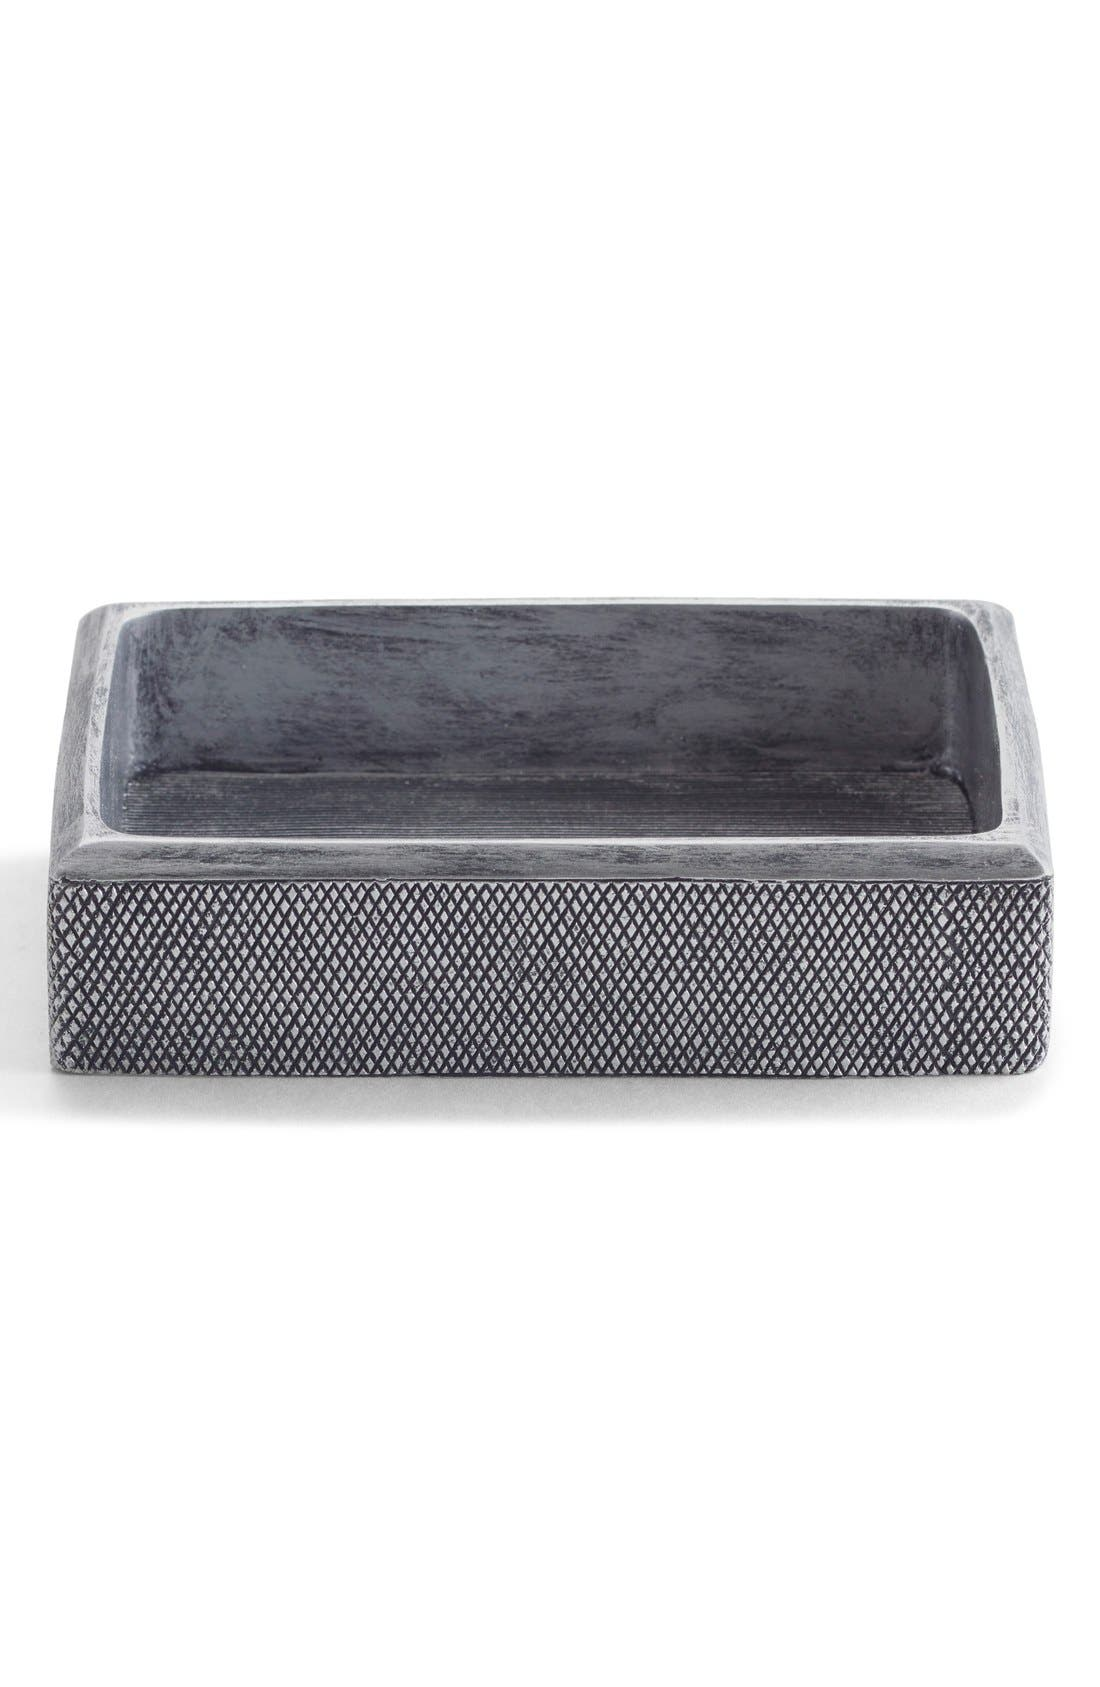 Etched Soap Dish,                         Main,                         color, Grey